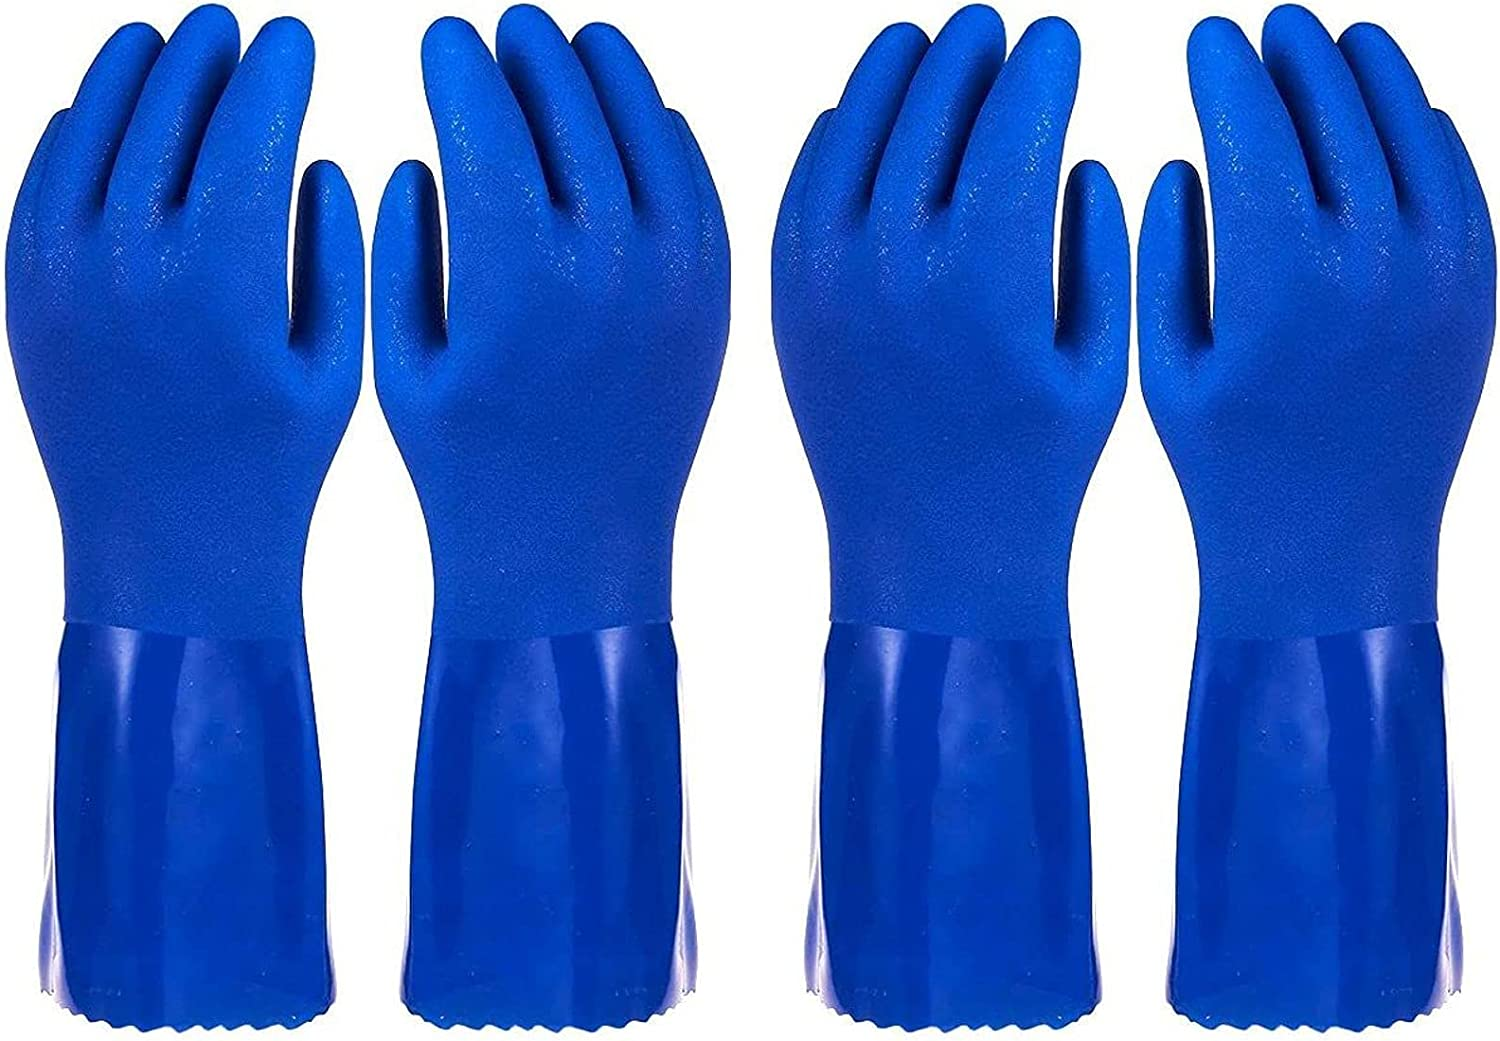 2 Pairs Rubber Philadelphia Mall Household Cleaning Dishwashing for Ranking TOP2 Gloves Kitchen